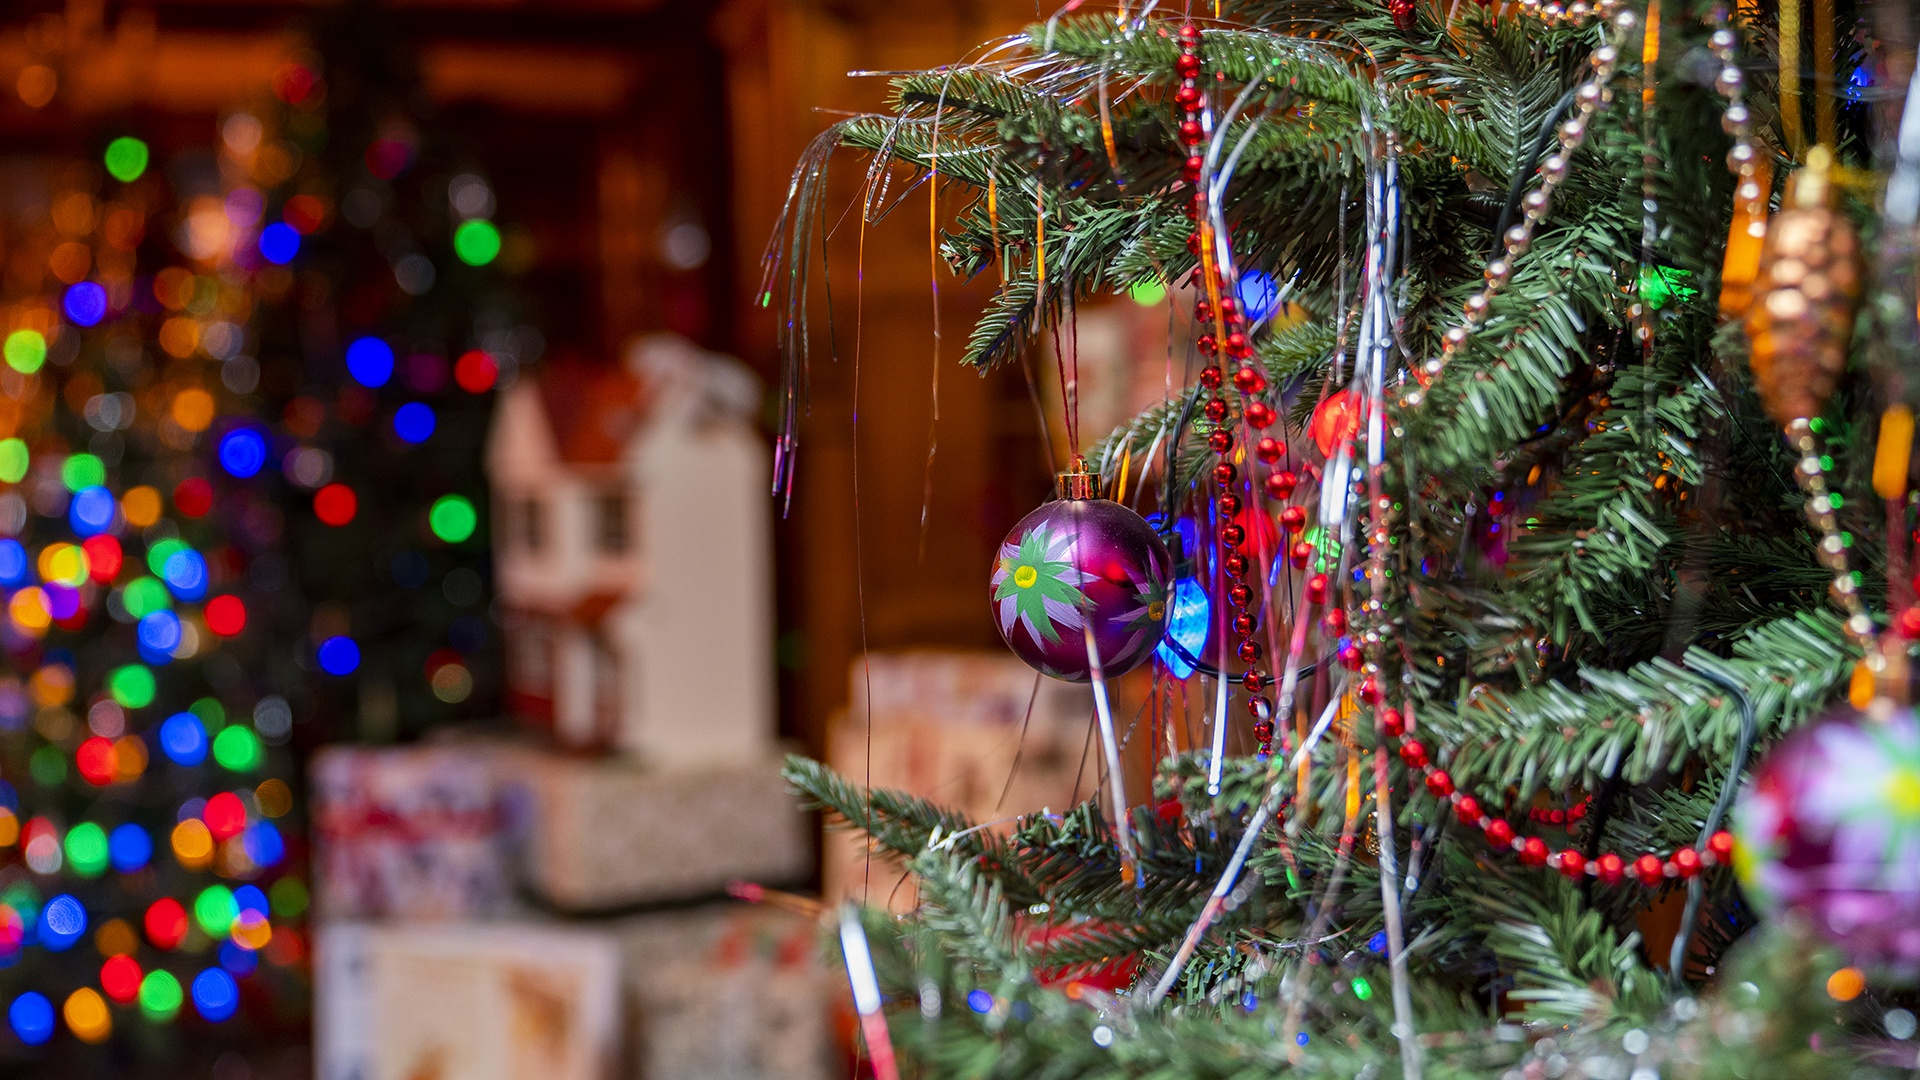 Tickets on sale for Bletchley Park's vintage grotto